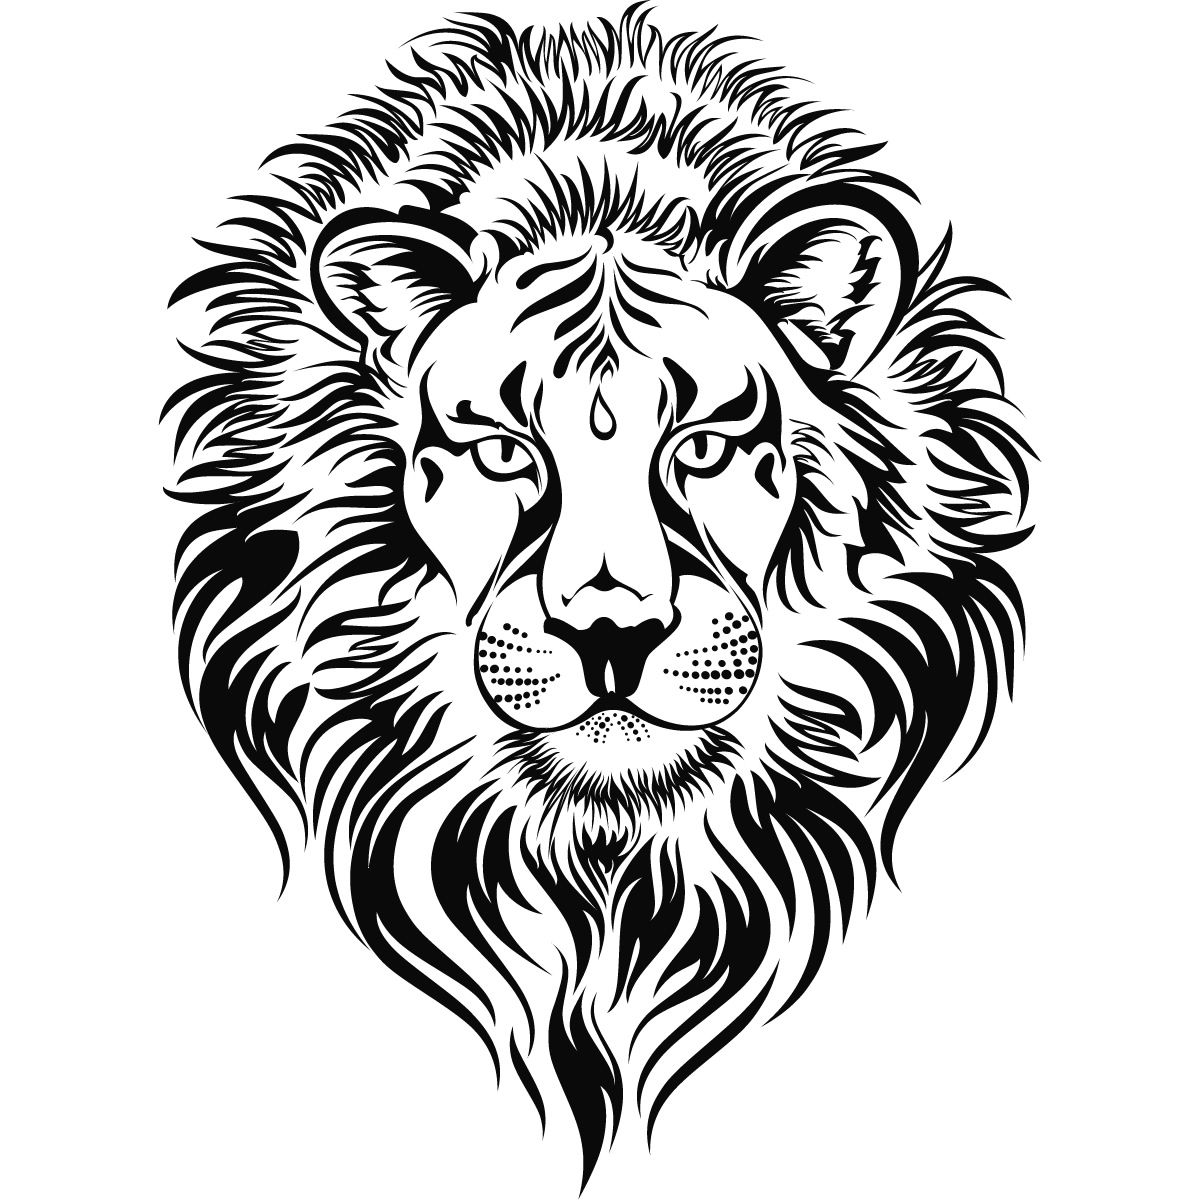 roaring lion head clip art clipart panda free clipart images rh pinterest com  roaring lion clipart black and white